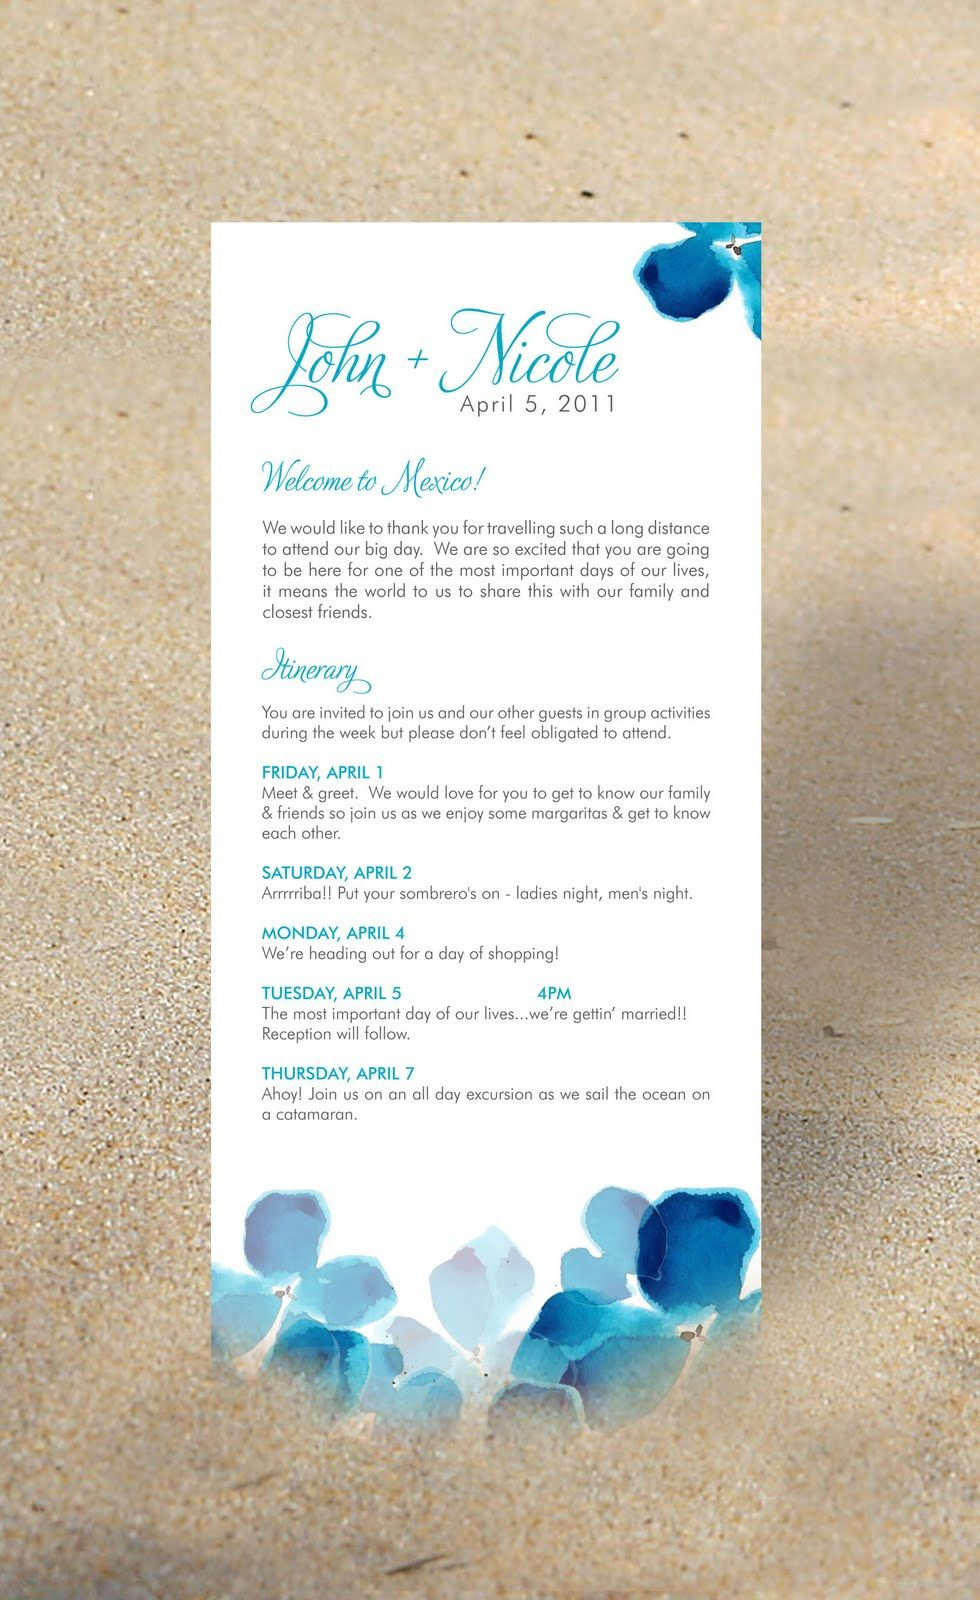 Paper Airplanes: Destination Wedding Itinerary | Vegas! | Pinterest